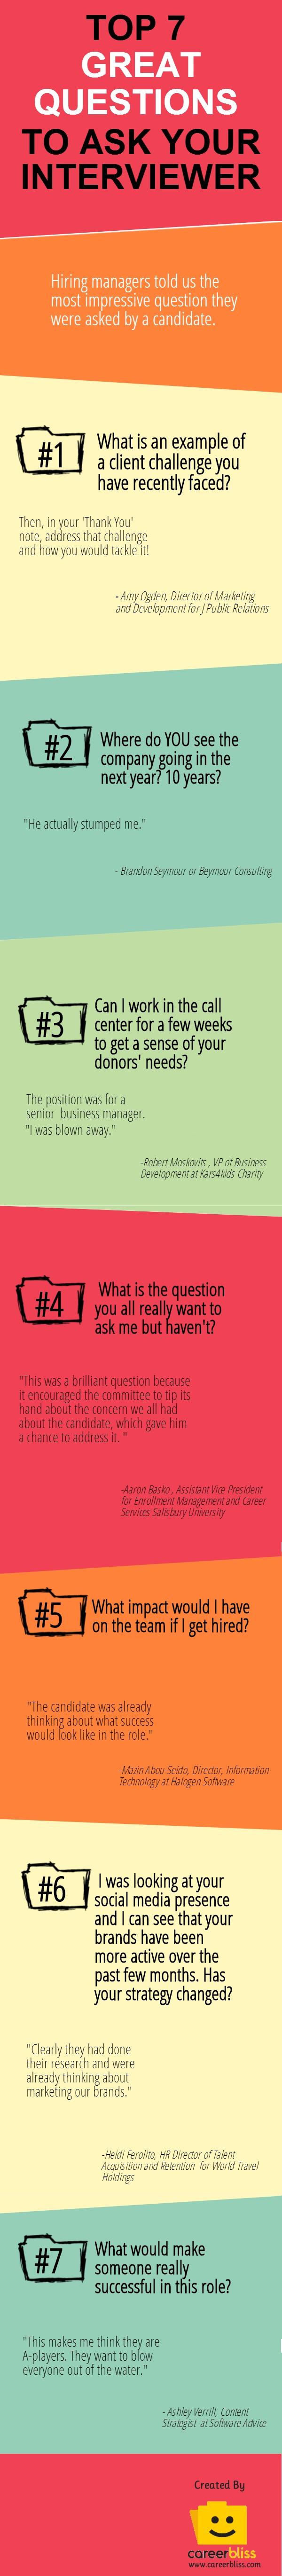 Top 7 Questions to Ask Your Interviewers